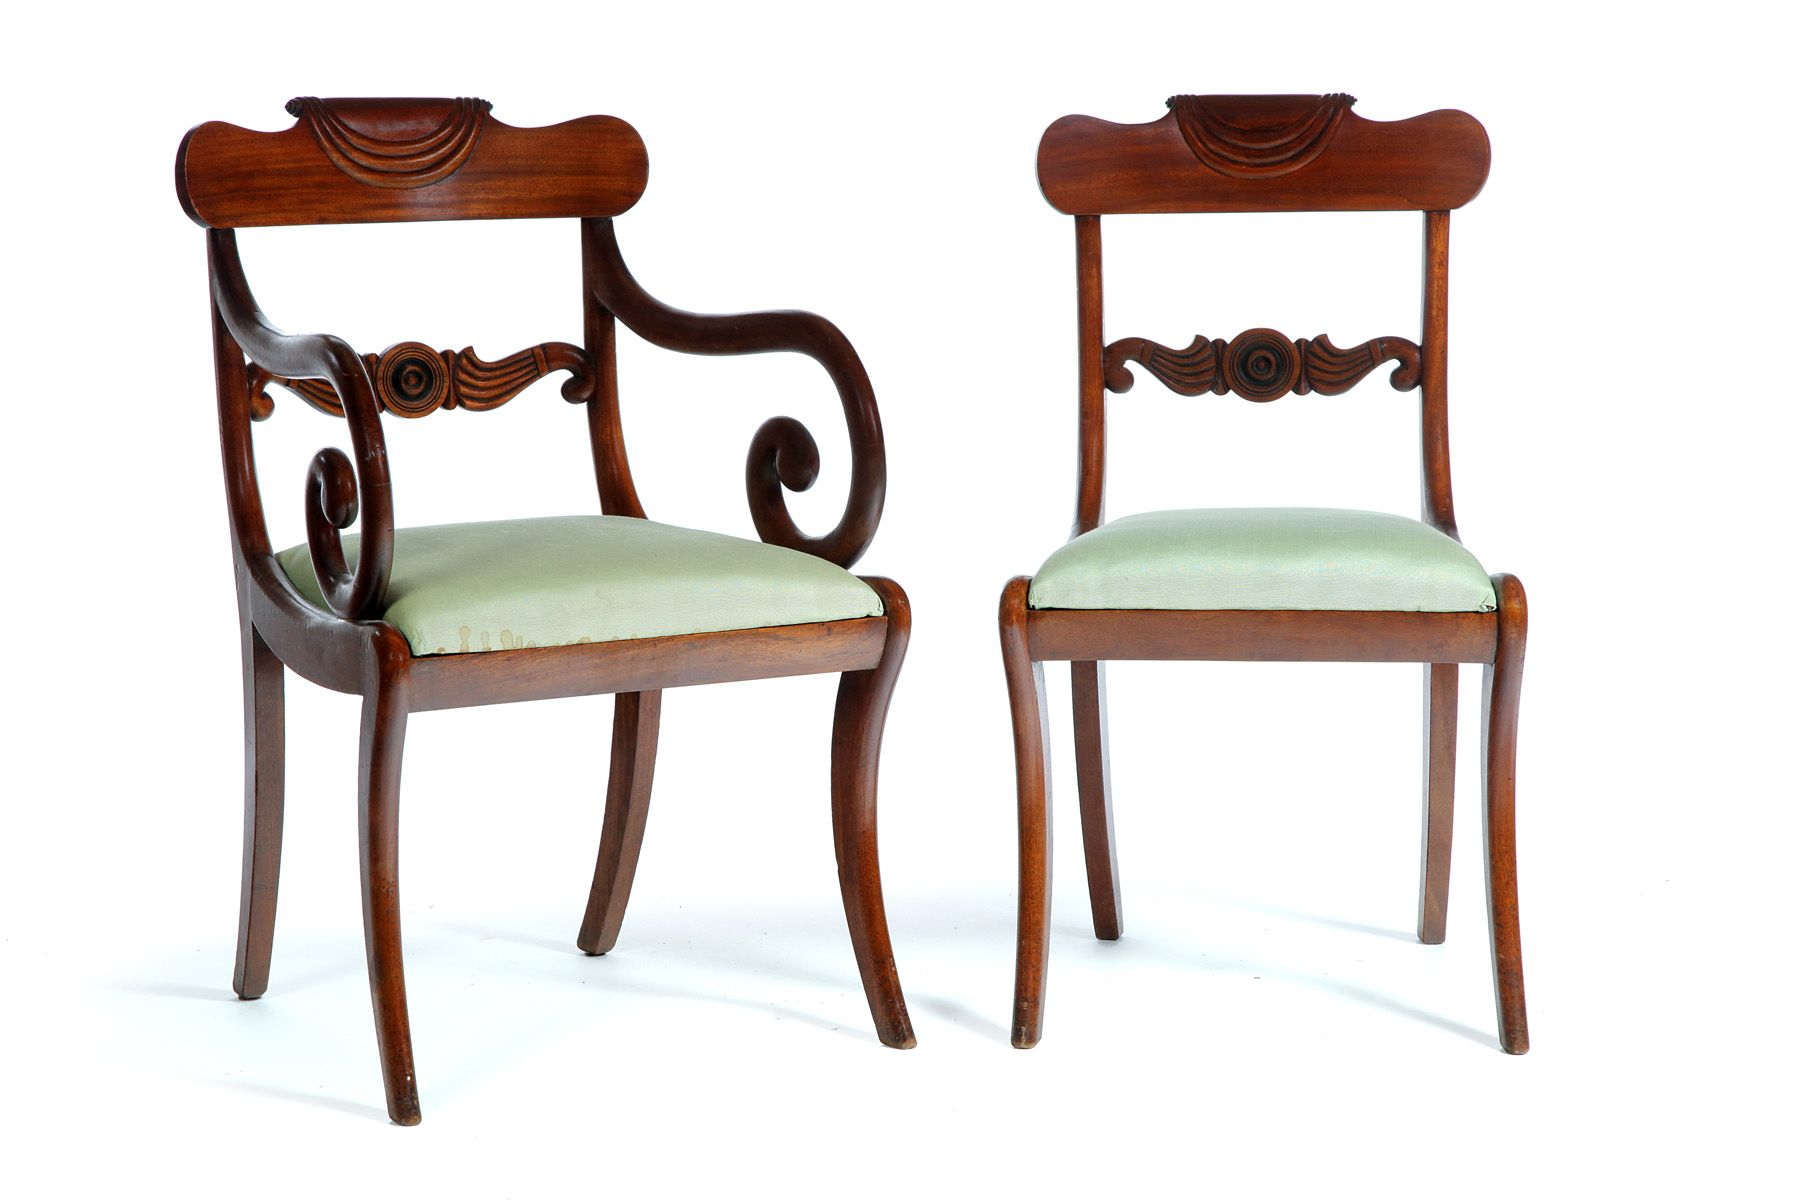 Classical Mahogany Chairs C 1820 1840 Coveted Antiques